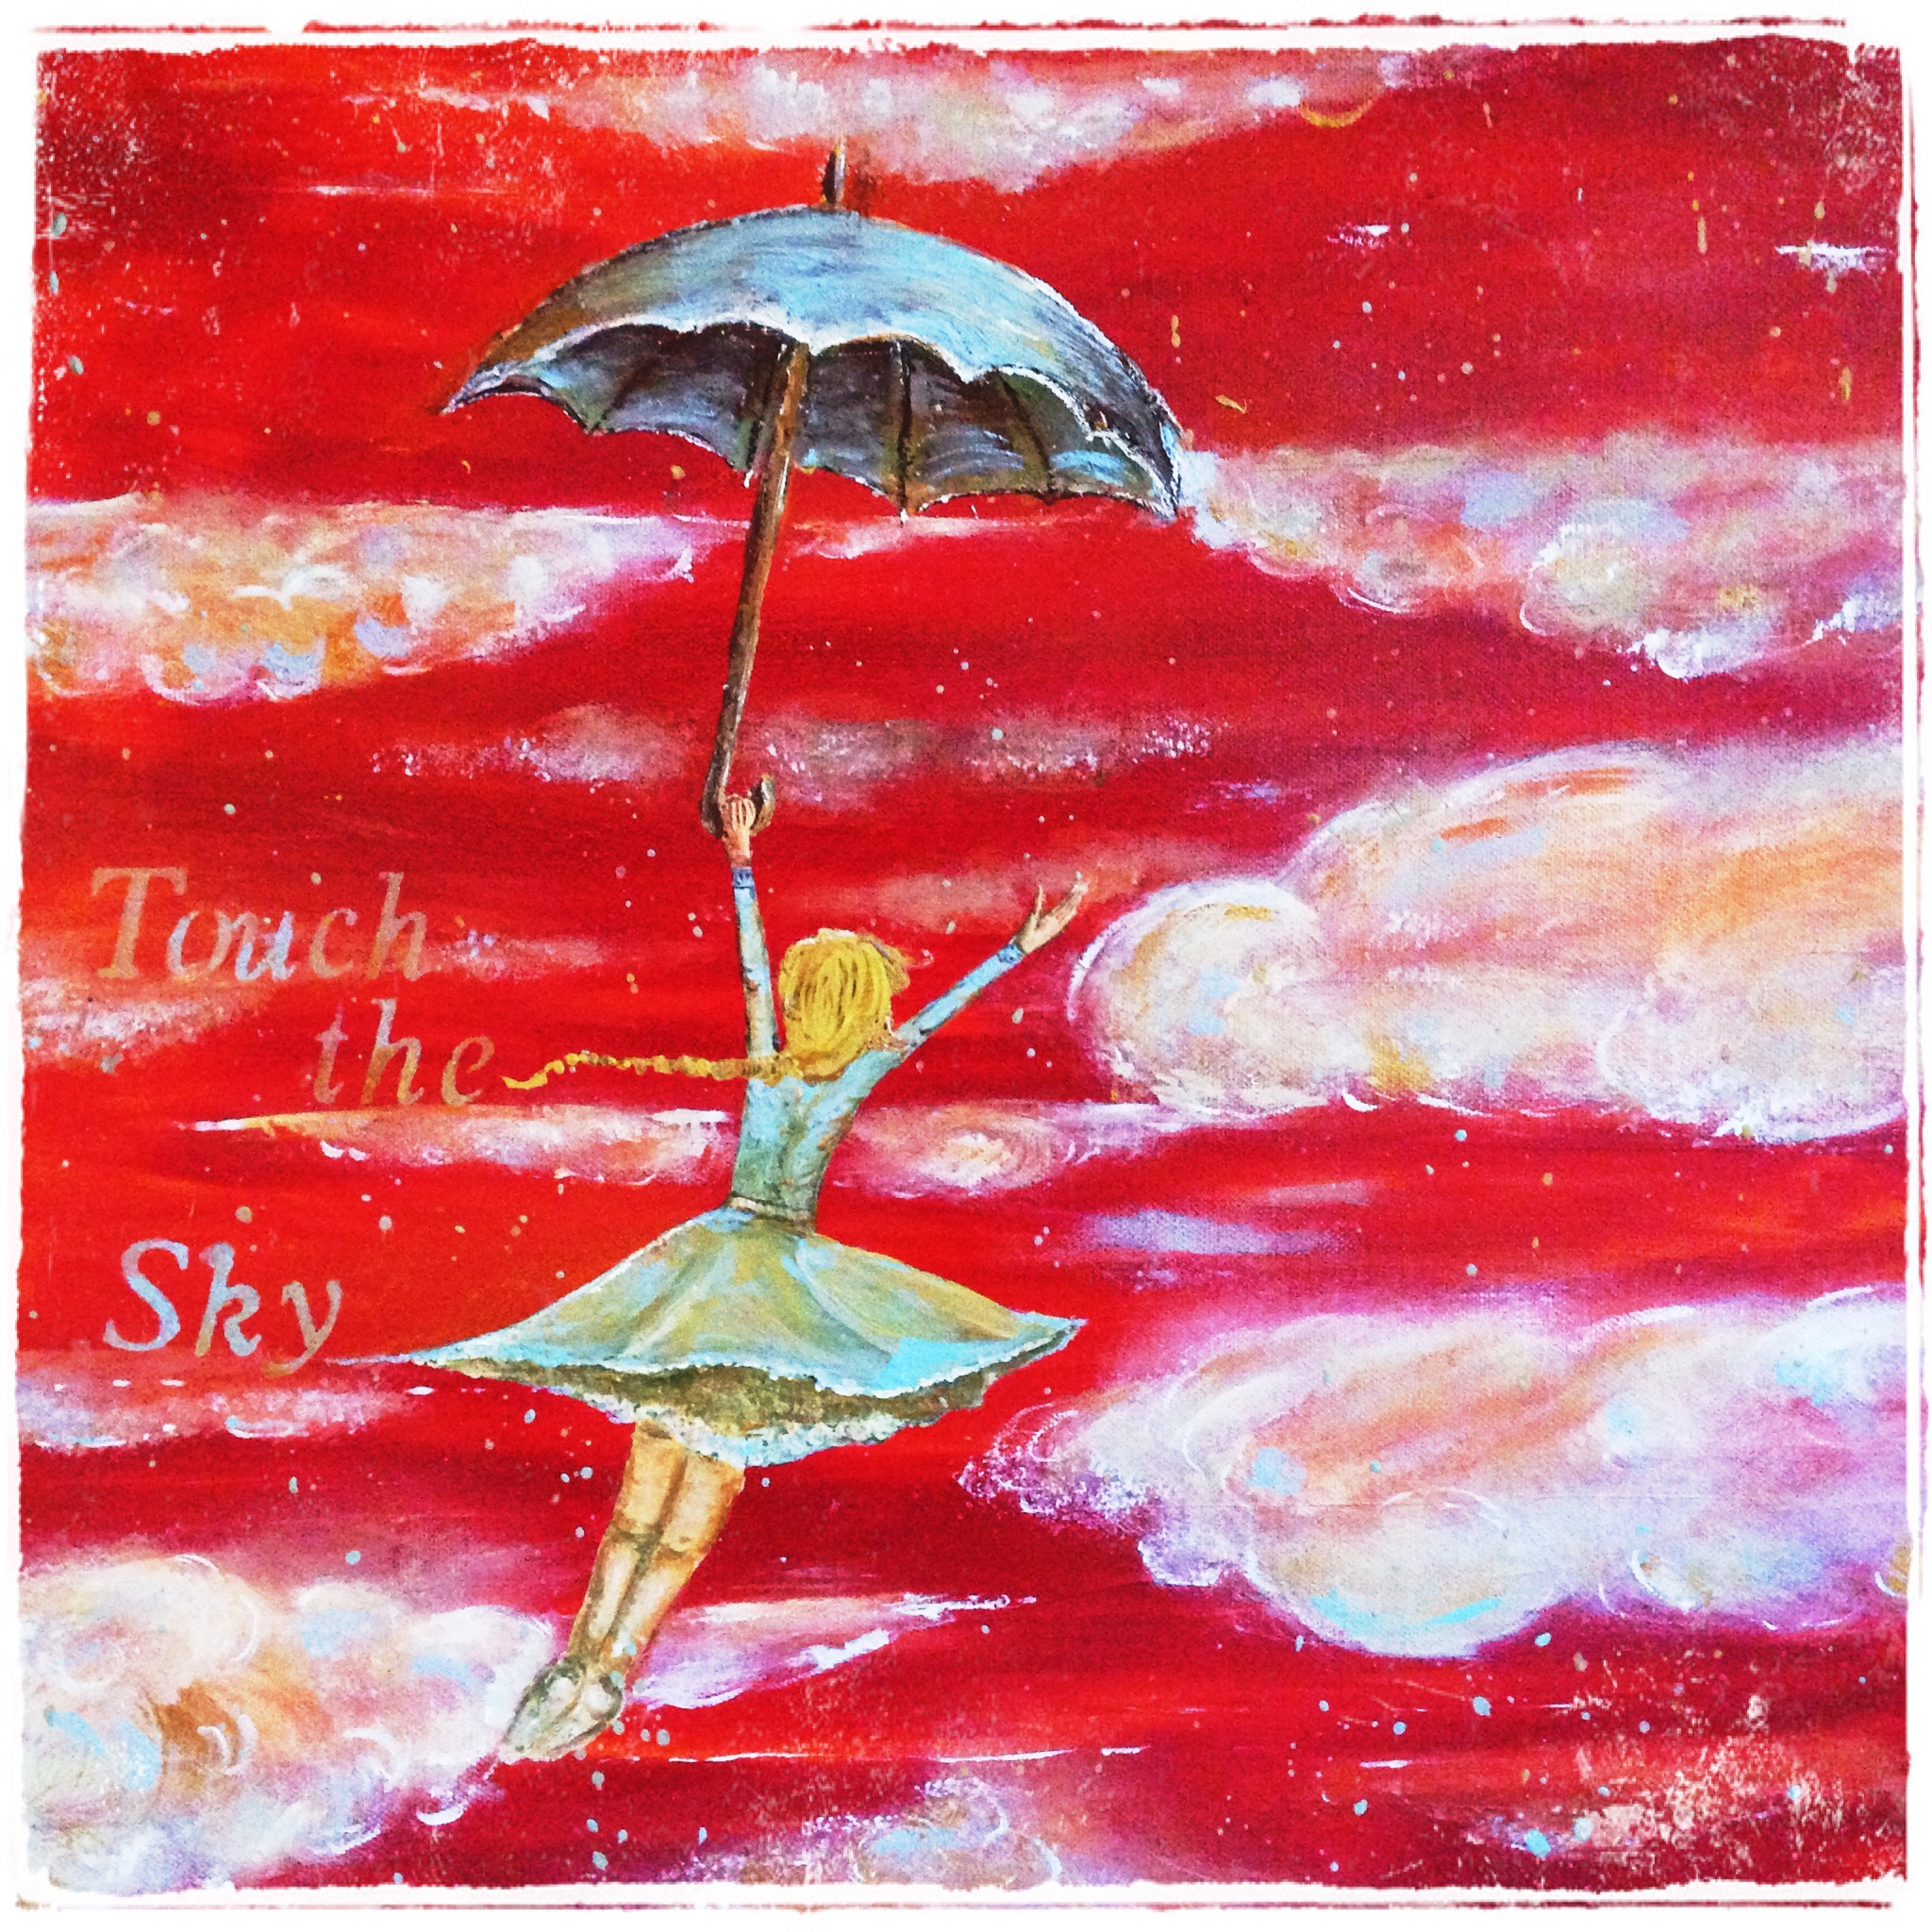 Touch the sky - Meline